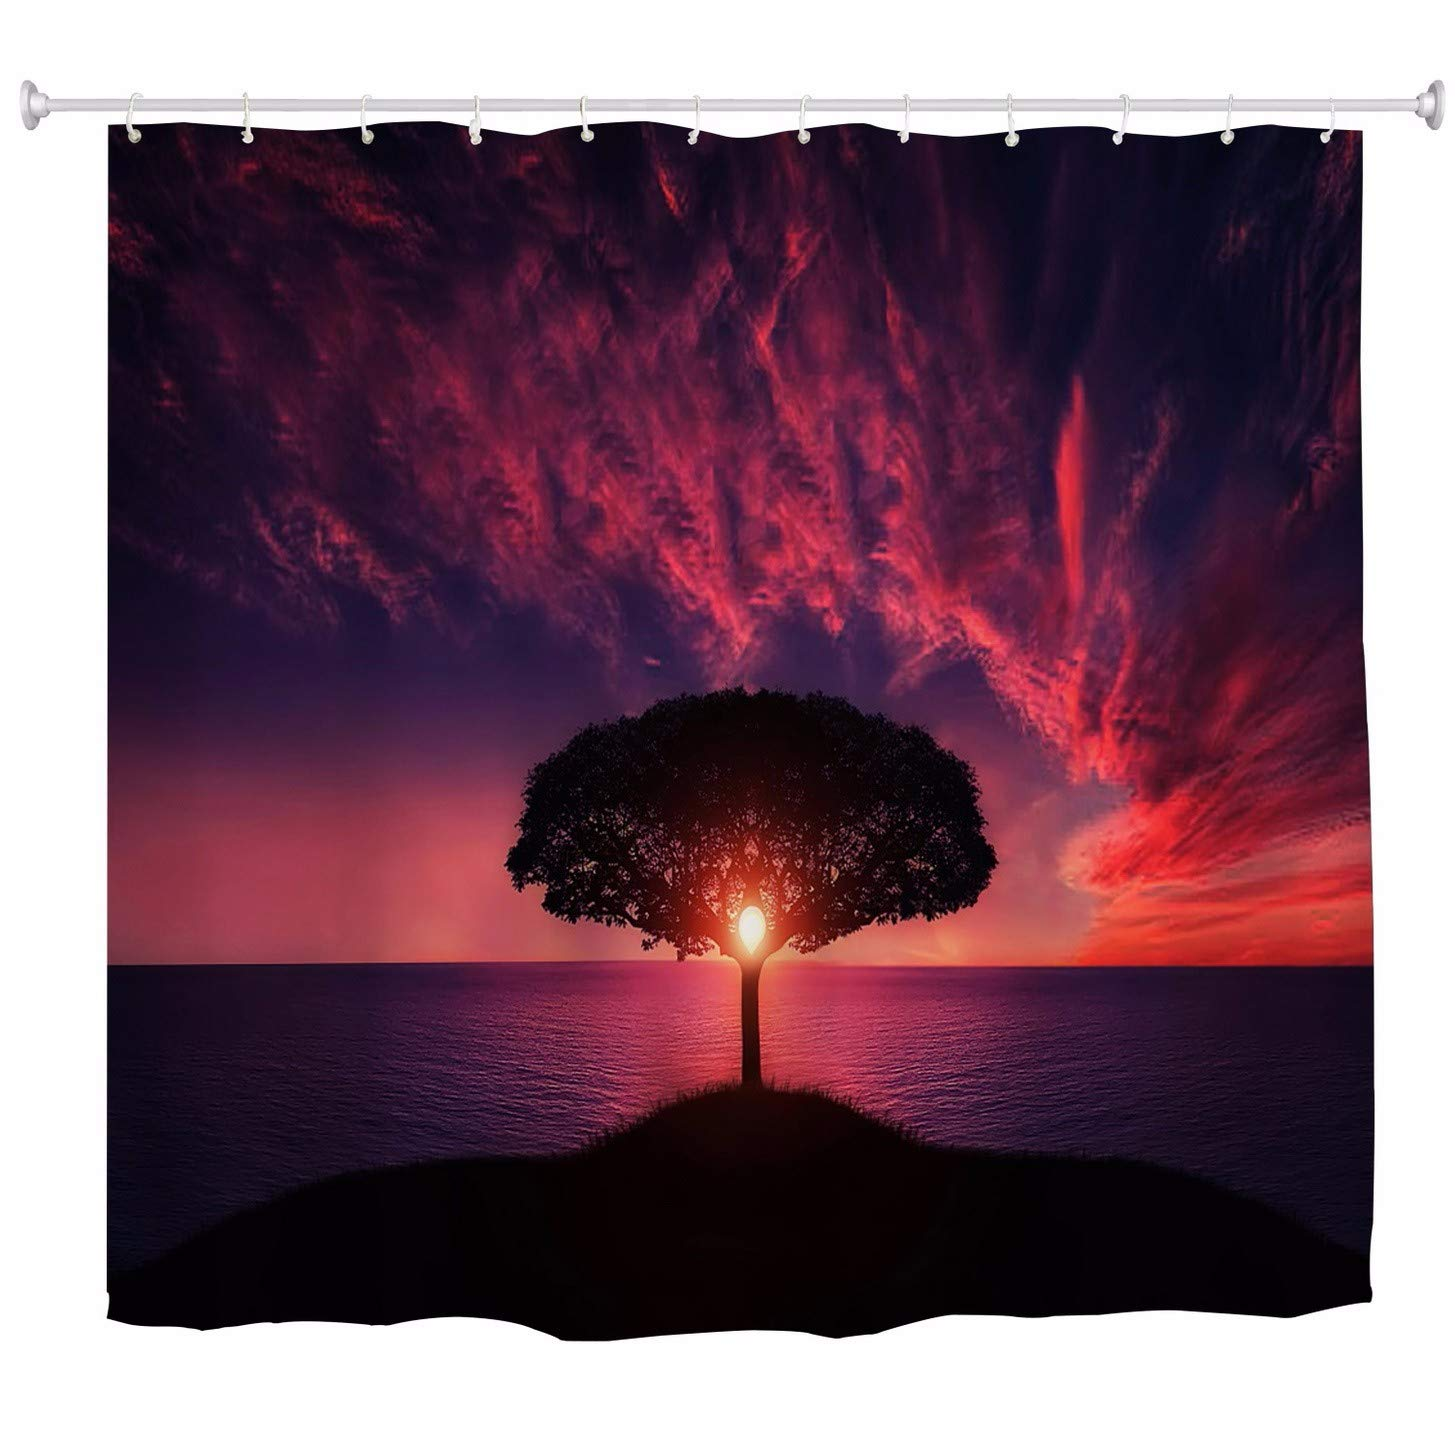 60x72 A.Monamour Ancient Egypt Scene Gods and Pharaohs Religious History Hieroglyphic Egyptian Murals Art Print Waterproof Fabric Bath Curtain Shower Curtain with Hooks Rings 150x180 cm